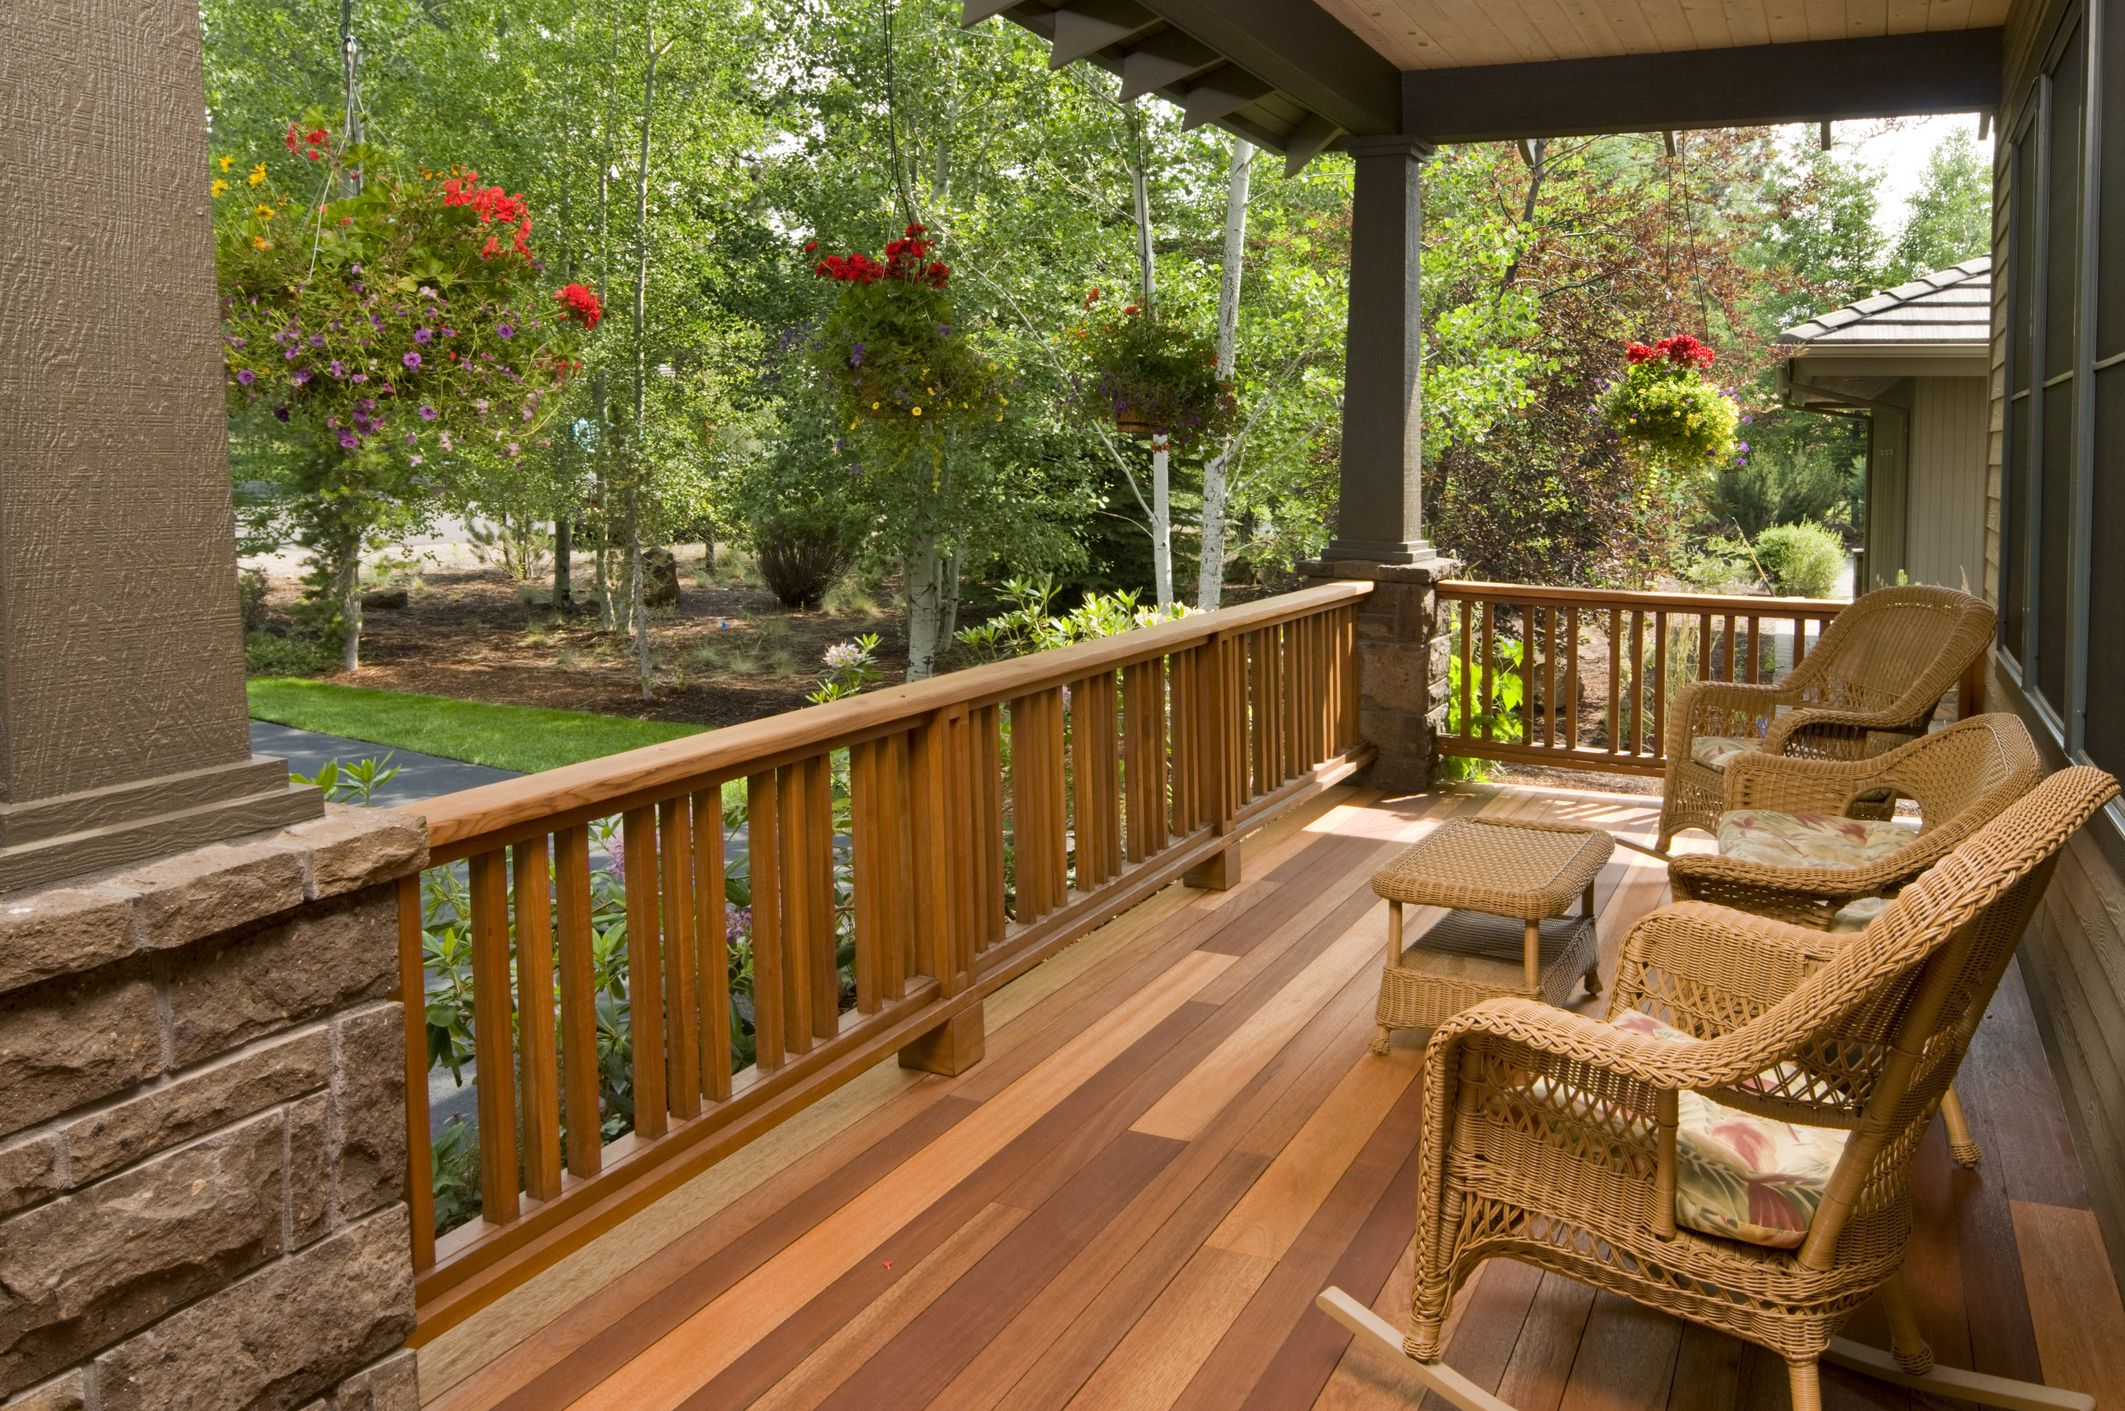 A Comparison Of Wood Decks And Composite Decks